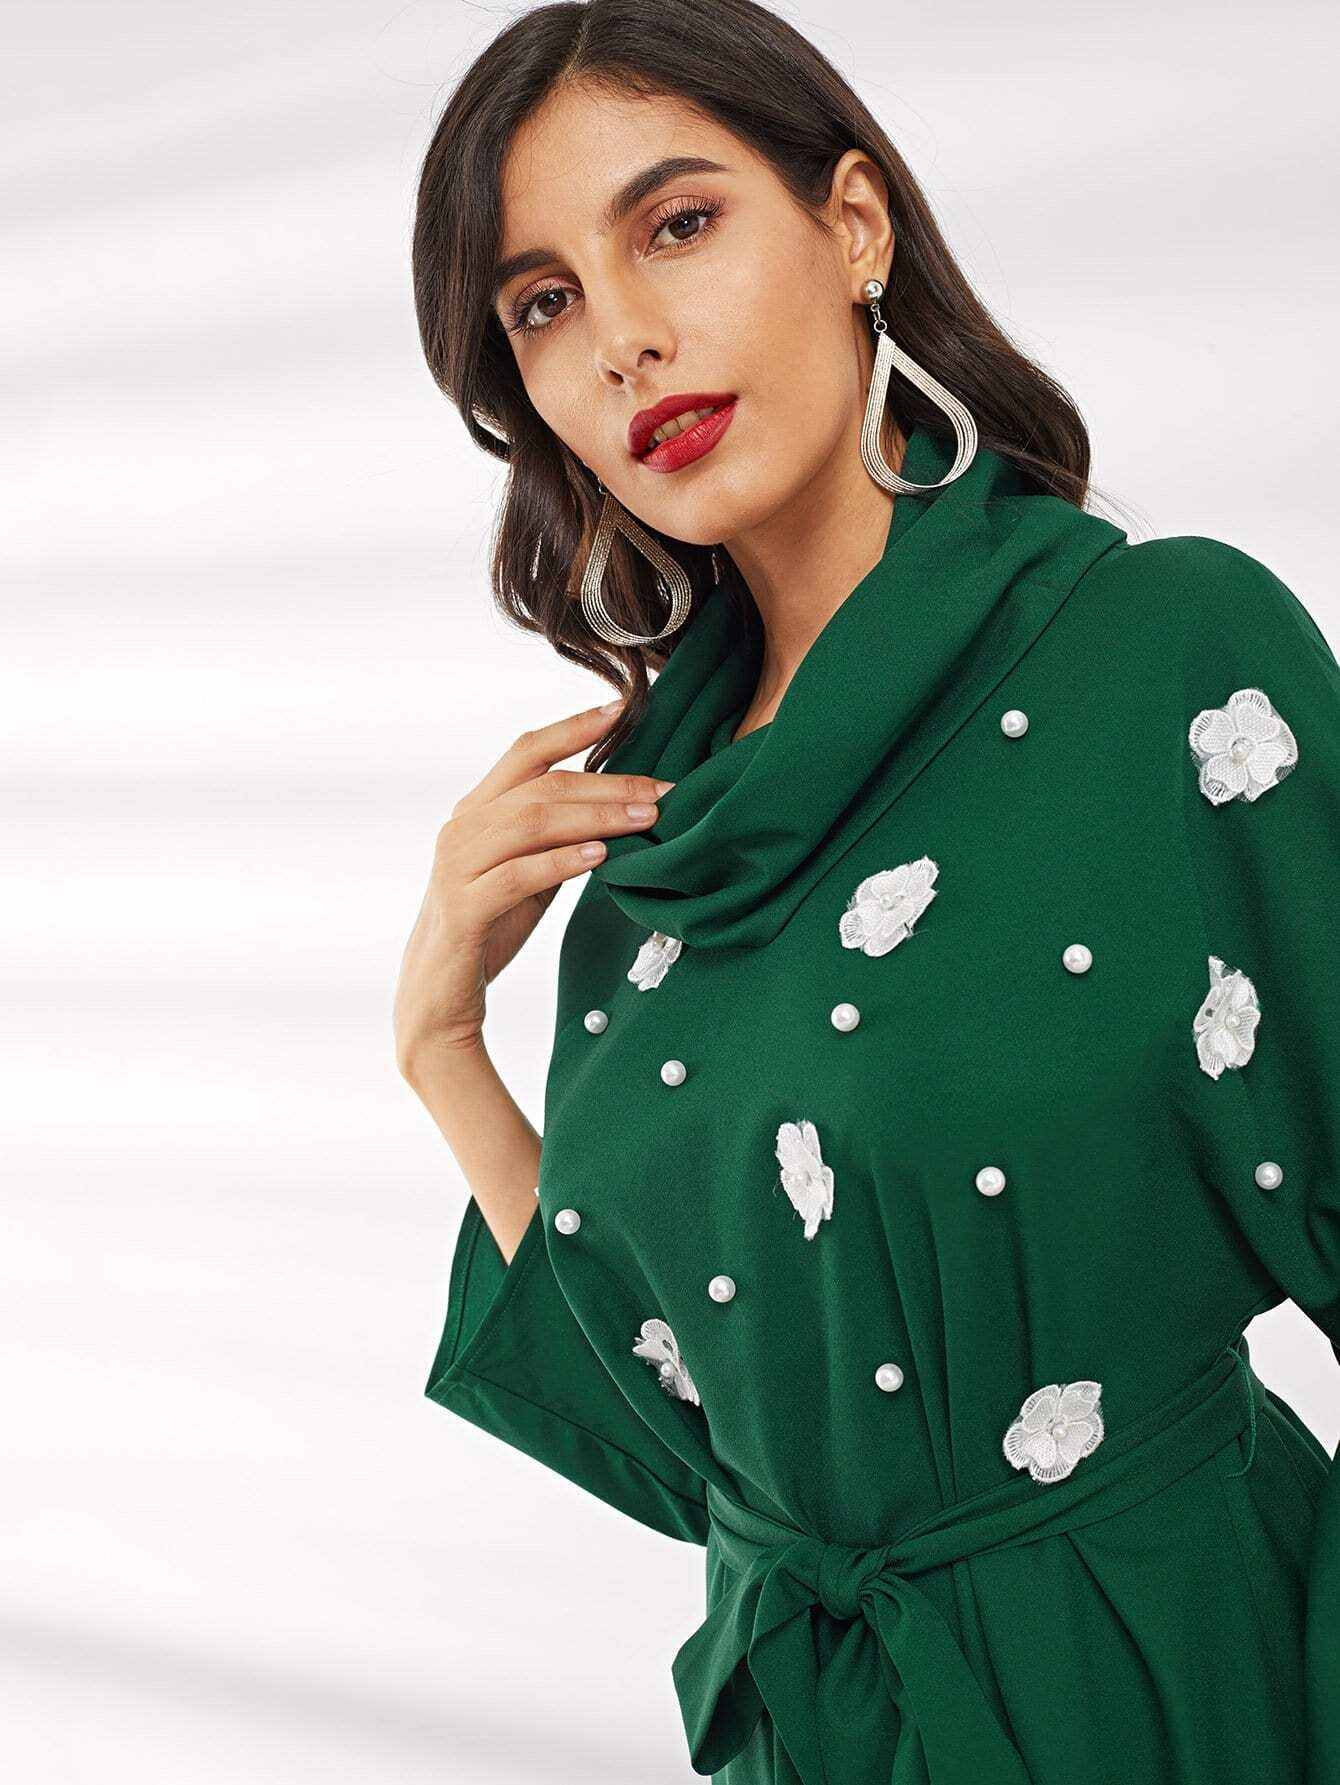 """robe hijab à col roulé avec <strong>ceinture<\/strong>"""" style=""""maҳ-width:410px;float:right;padding:10рx 0px 10px 10px;border:0px;"""">Porte Monnaie is also home to an old cathedral, which is believed to date back to the sixth century. 1 such instance is that a store named La Belle Epoqu</p> <p>If you don't have been from France, then it's possible to learn about the history of this city from other traffic to Porte Monnai The town is steeped in French history also it has become the centre of several political events all through recent years.</p> <p>Cela permettra d'assurer que le contenu restent frais and longtemps et ne pas courir dans l'autre et causer des dégâts.</p> <p>The beach has many areas of lodging available, from one room to a five star hotel or apartmen Apart from the primary shore in portemonnaie, there is a beach which is remarkably popular among tourists, namely the beach in the centre of the town.</p> <p>Vous pouvez également trouver qu'il y a de cher variétés que vous pouvez acheter pour ceux qui ont beaucoup de besoins différents. If you prefer to wear neutral colors, or really are a more fearless fashionista, you're bound to discover a style that meets your requirement</p> <p>There are several shores along portemonnaie,  <a href=http://www.tunes-interiors.com/UserProfile/tabid/81/userId/14001636/Default.aspx>Maroquinerie-De-Luxe</a> for example some of the greatest beaches in Tunisia and a few of the top beaches in Europe.</p> <p>They have some terrific scents to wear when you are just lounging around your home or enjoying a romantic evening with a guy you're thinking abou If you are interested in finding something you can wear any given occasion, based on Porte Monnaie perfume is a superb selection.</p> <p>A female with a love for fashion may make certain to find an ideal fit from the newline of their porte-monnaie, a popular French brand known worldwide.</p> <p>But, there are certain shops that are considered to be more""""аuthentic"""", which means that """